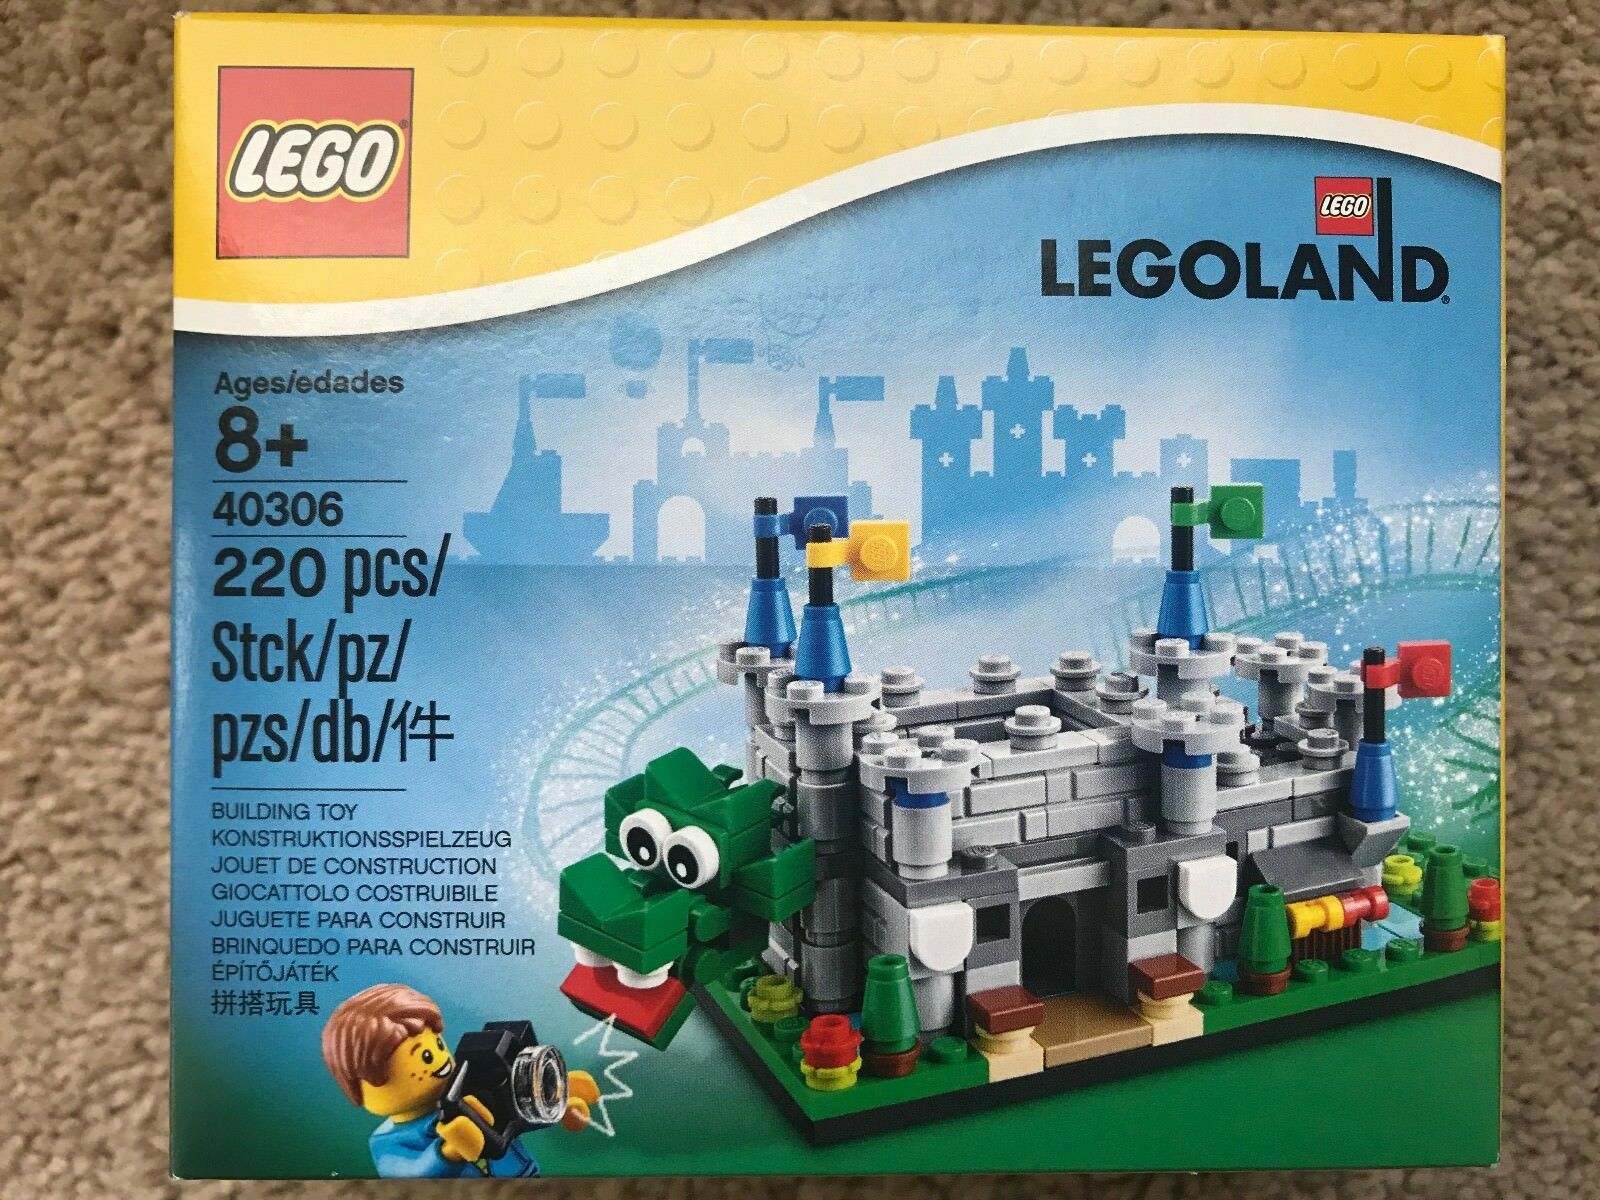 NEW SEALED LEGO SET 40306 LEGOLAND EXCLUSIVE MICRO CASTLE & OLLIE THE DRAGON